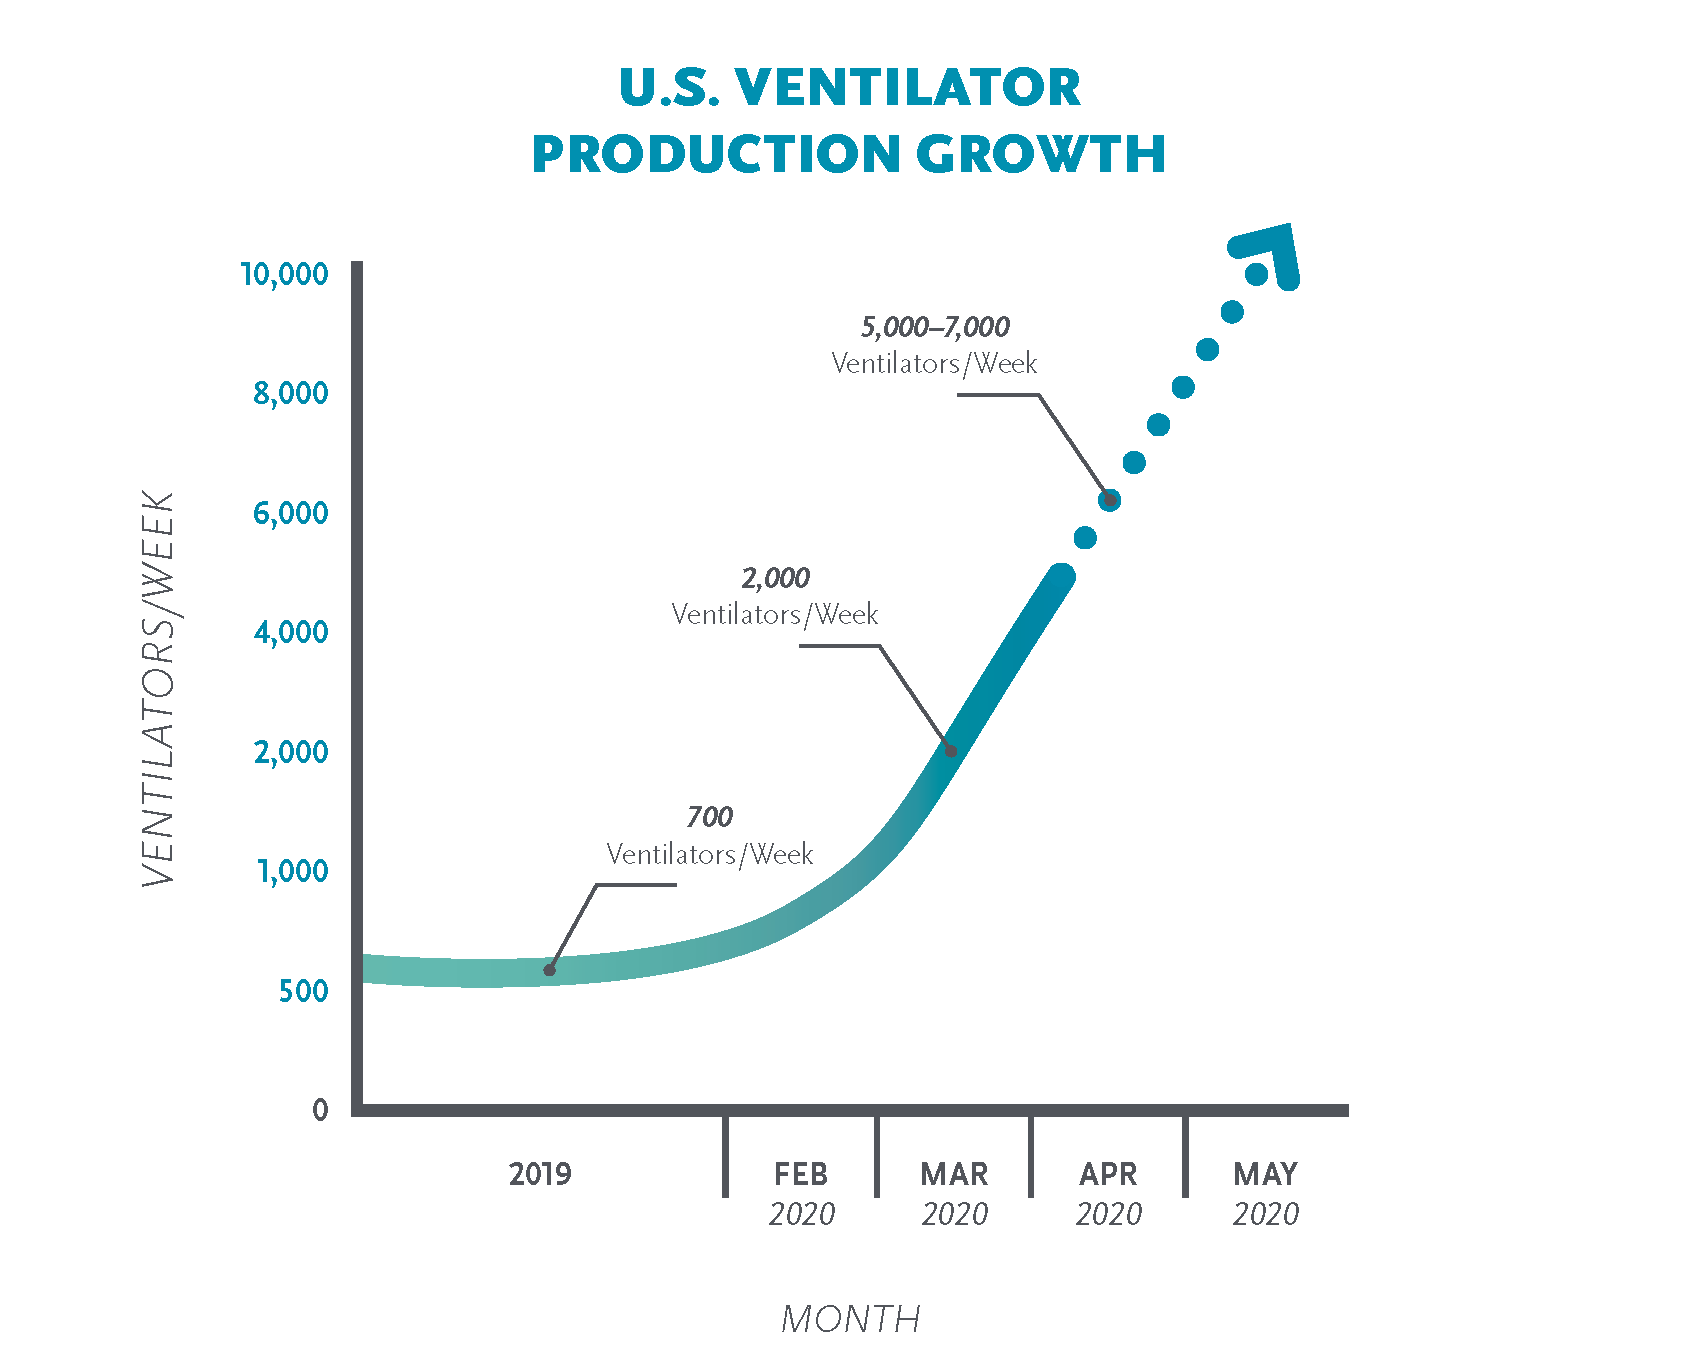 Unprecedented demand for respiratory medical devices in the US